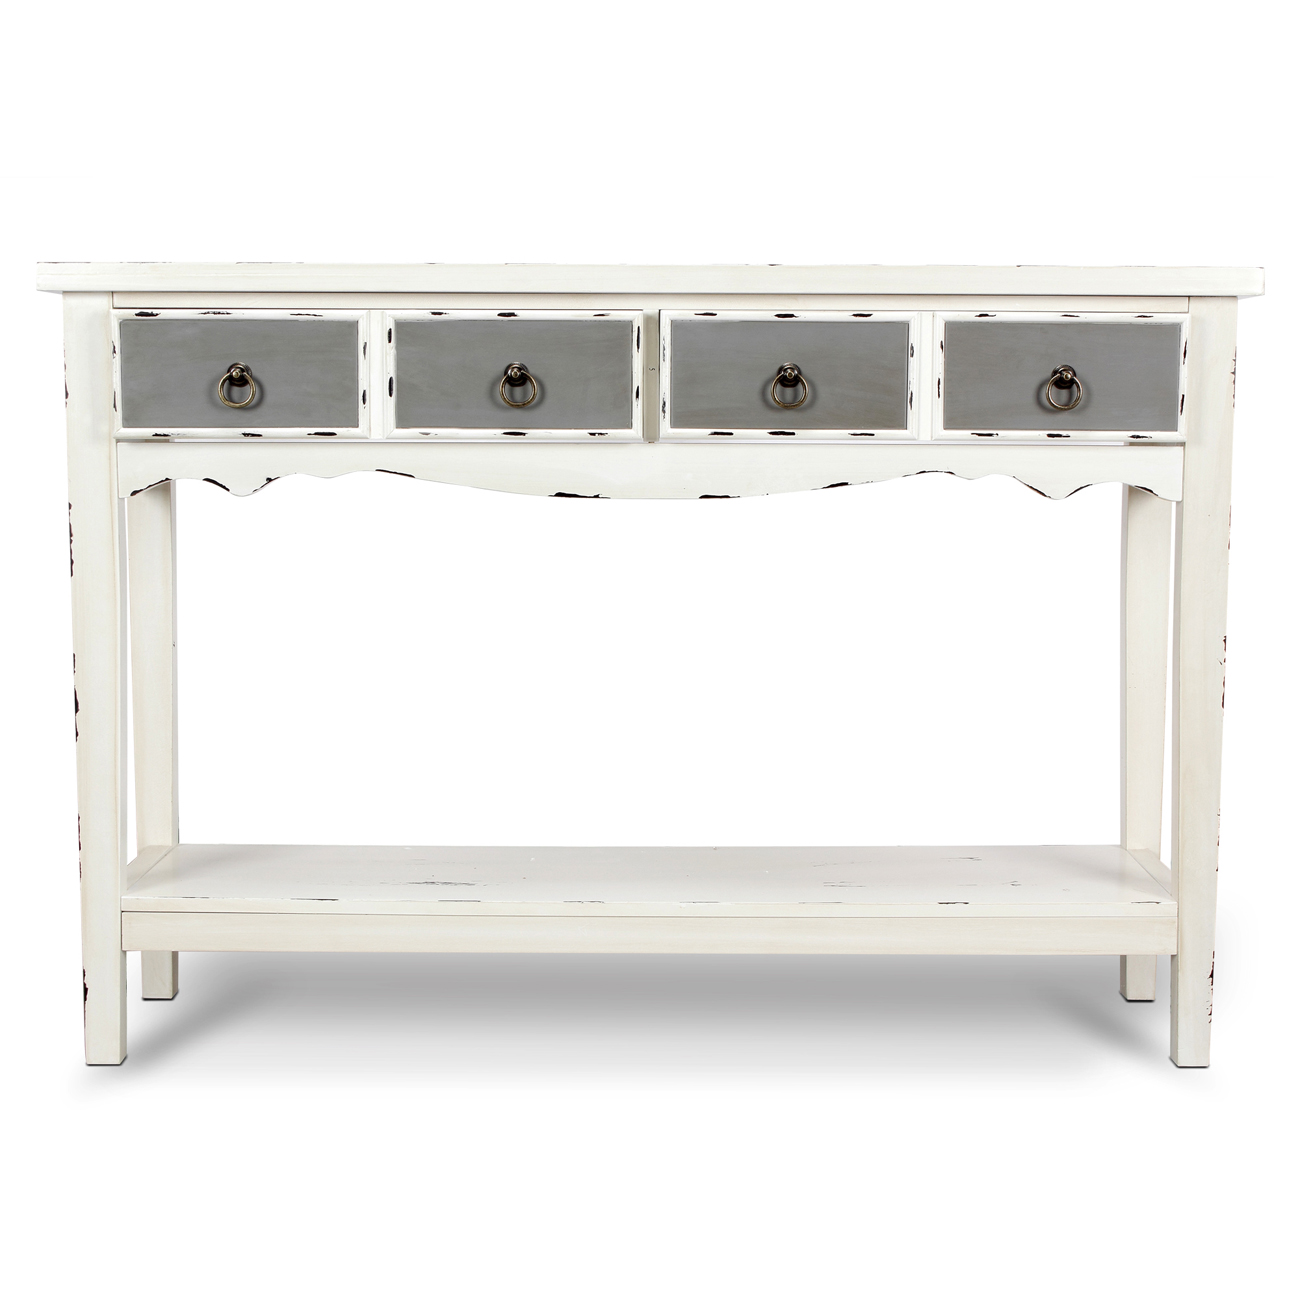 modern living room drawer rectangular console table distressed target hafley accent white finish vintage sofa designs black bedside lamp green tablecloth small acrylic corner